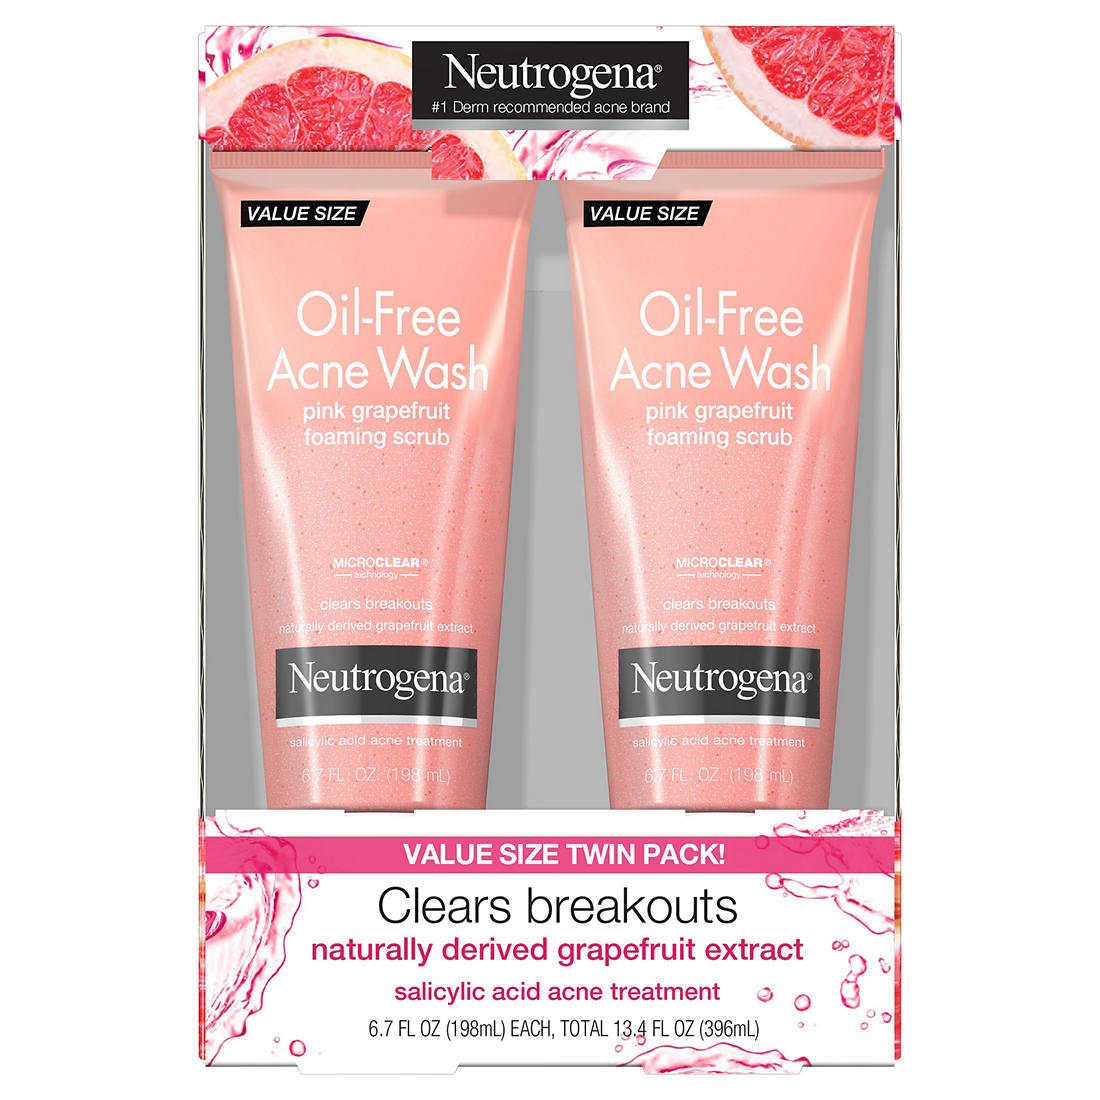 Neutrogena Oil Free Pink Grapefruit Acne Face Wash Foaming Scrub